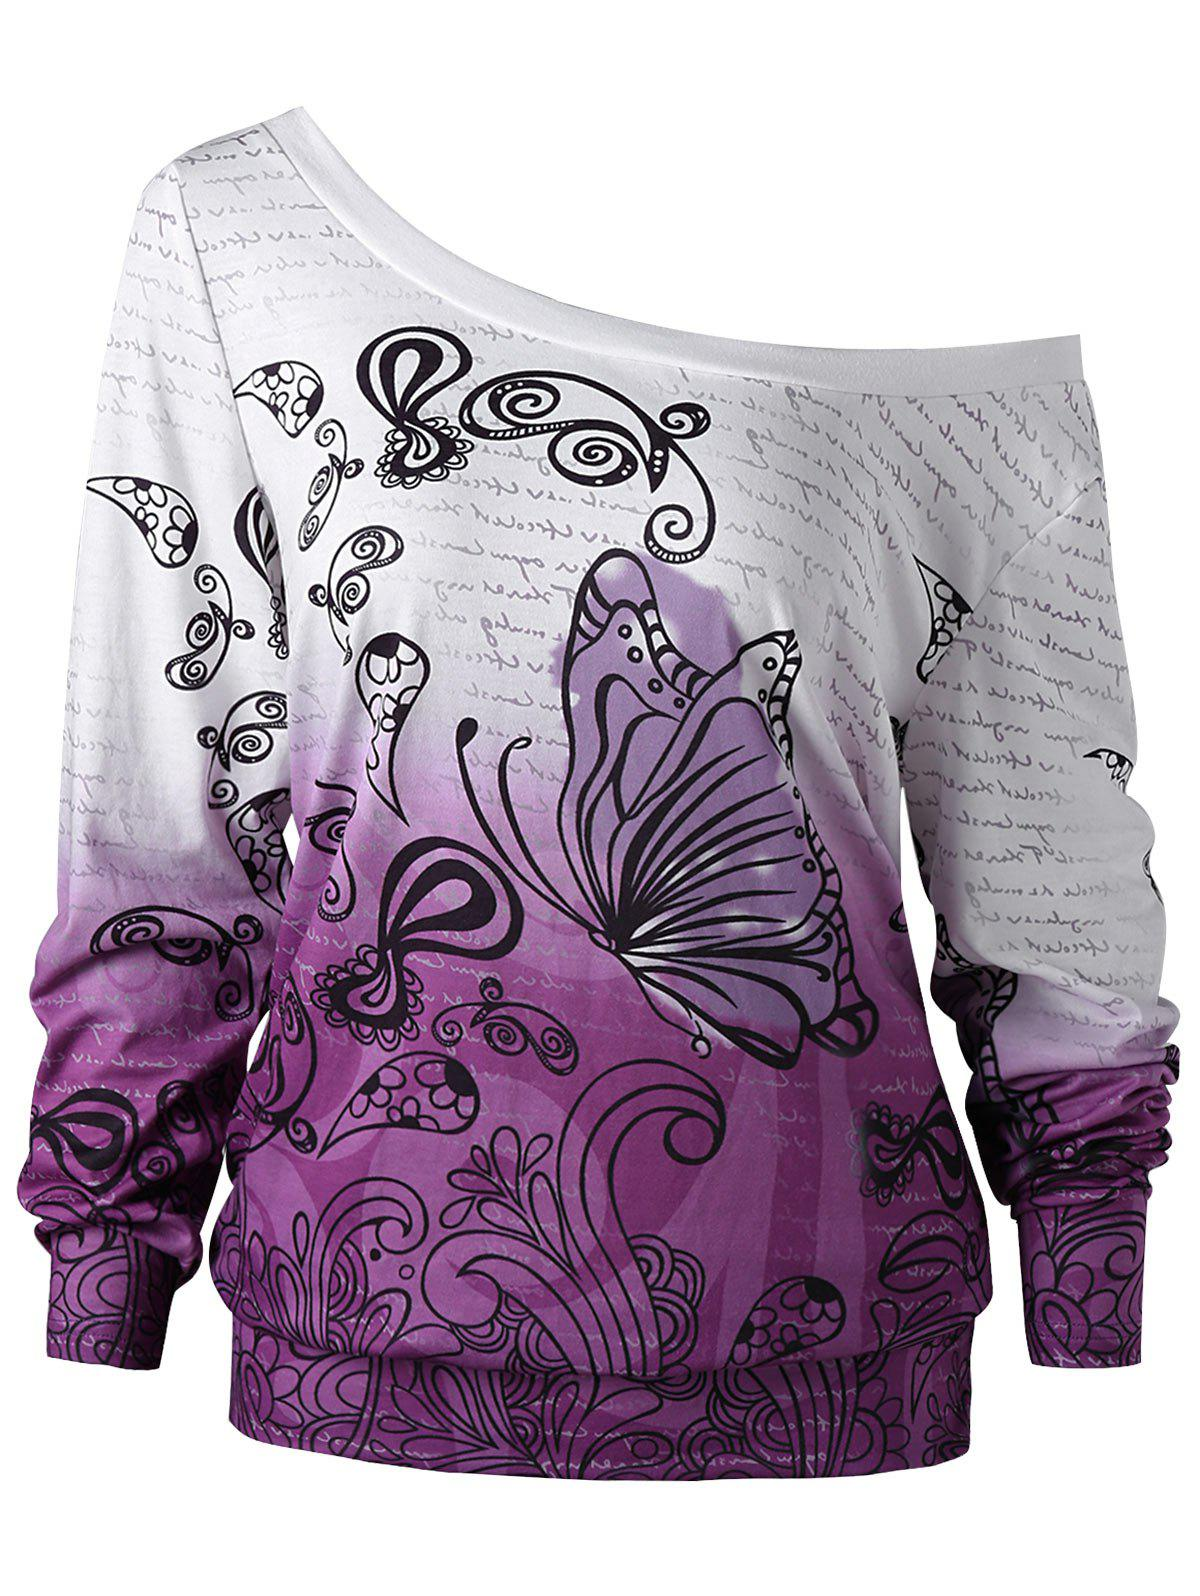 Plus Size Butterfly Print Ombre Sweatshirt plus size letter print hooded sweatshirt dress